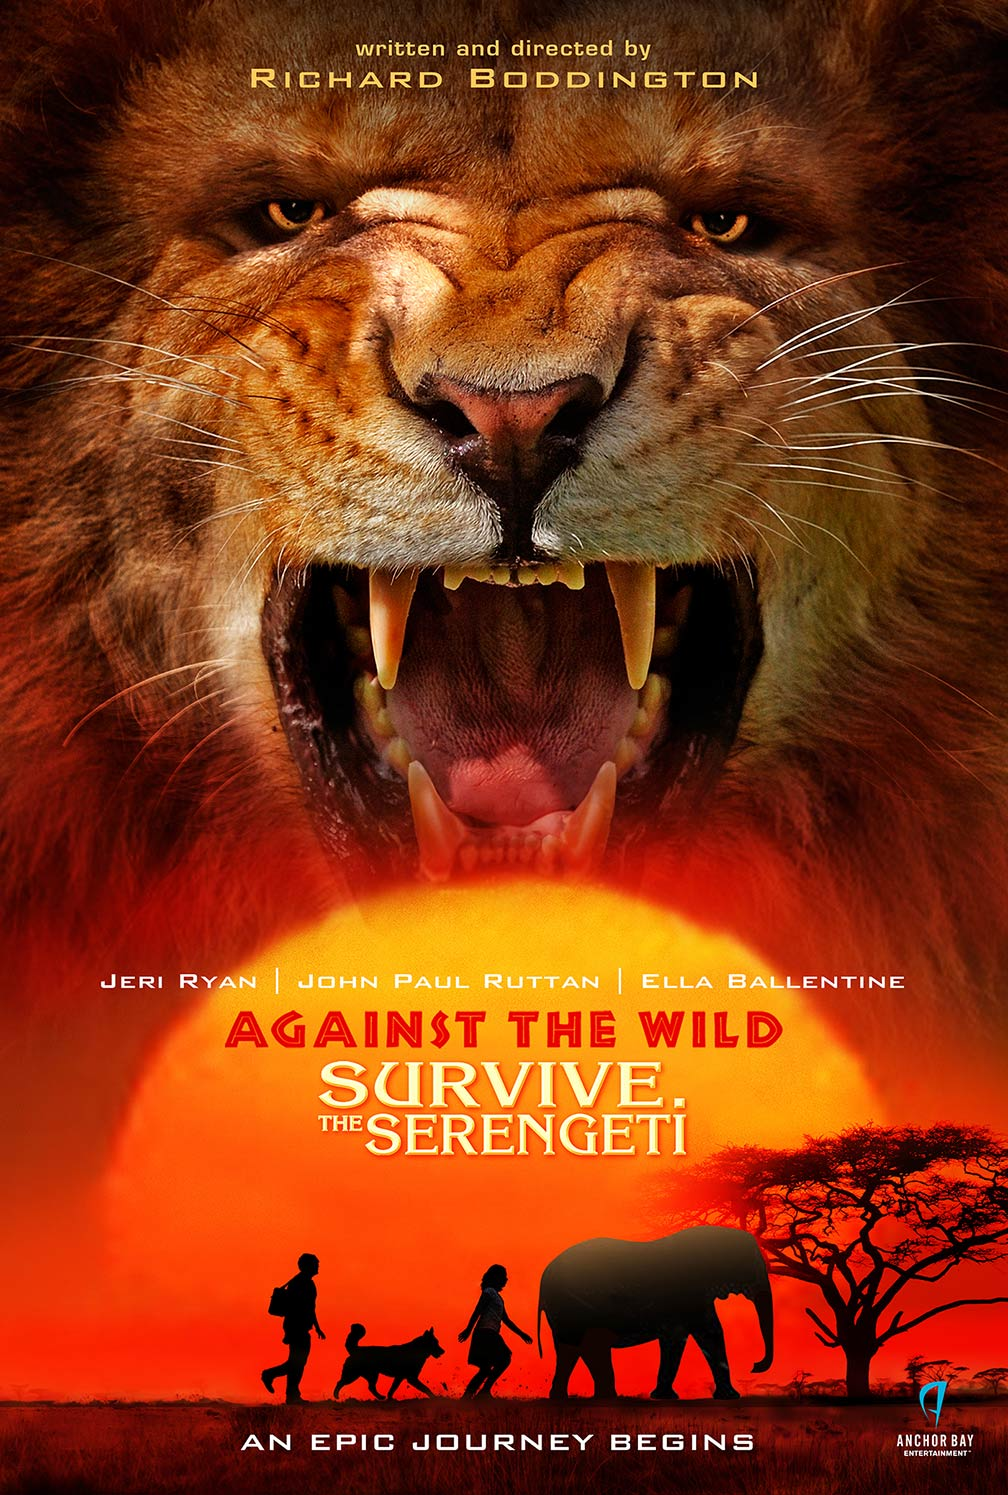 Against-the-Wild-2-Survive-the-Serengeti-2016-YeniFragman